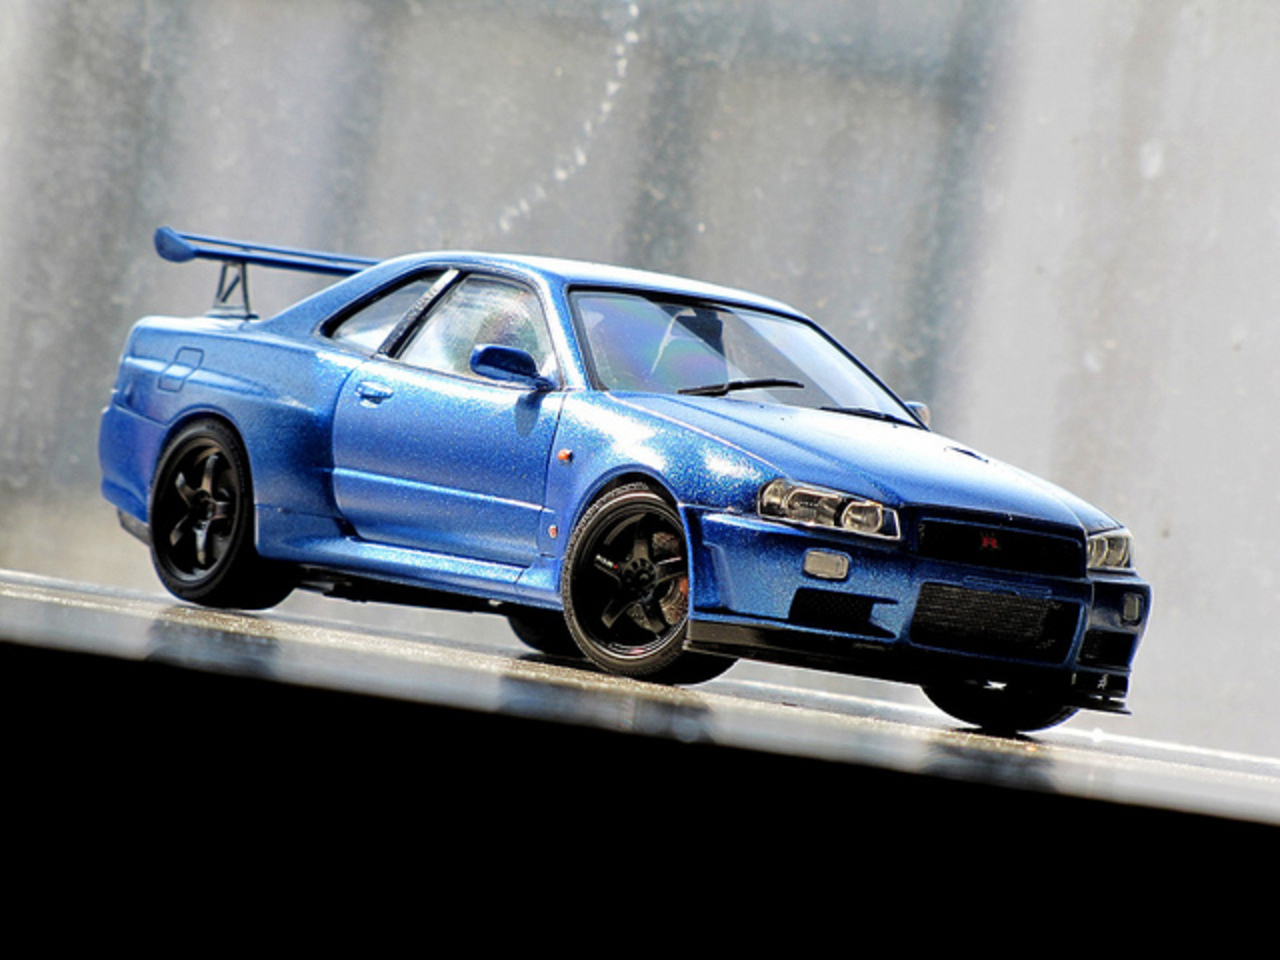 NISSAN SKYLINE GT-R (R34) V-SPEC NUR II | Flickr - Photo Sharing!